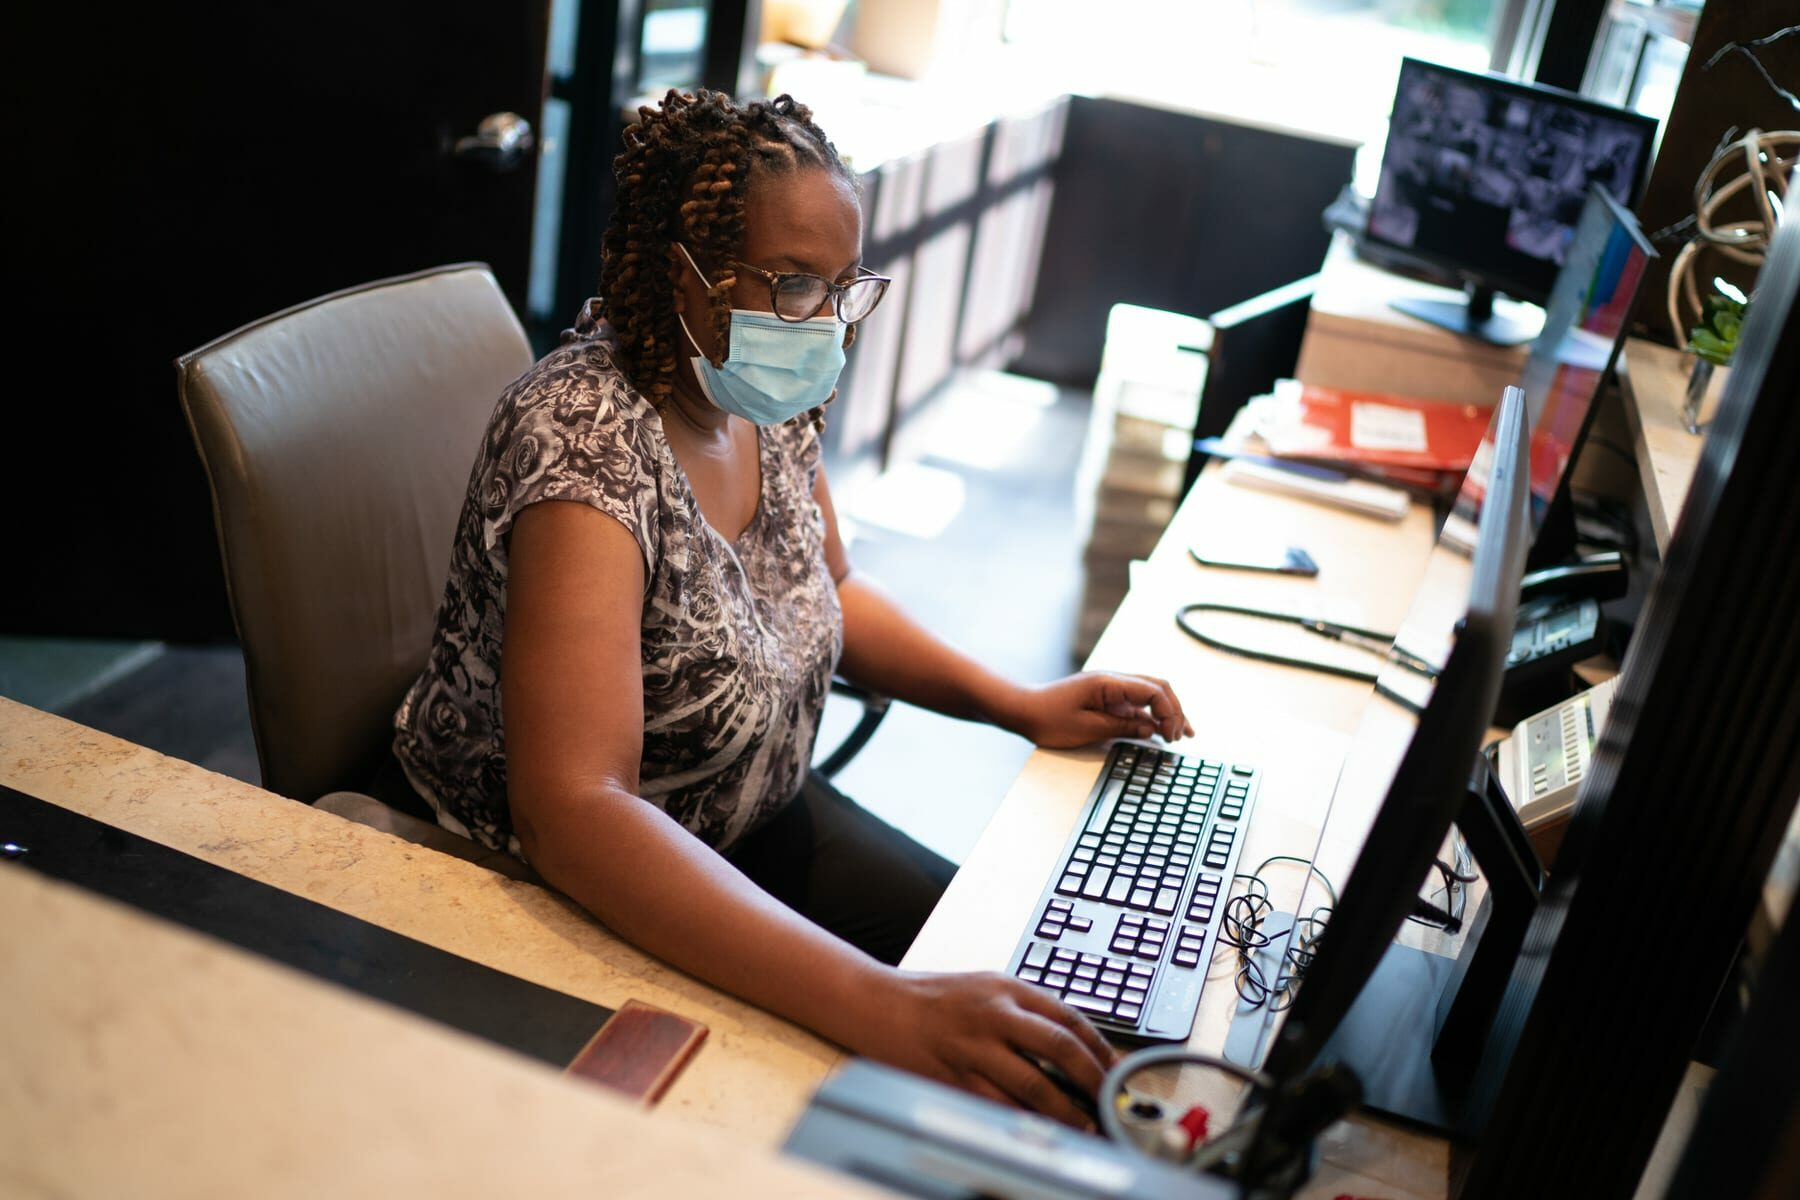 A Black women works behind a desk at an apartment building.